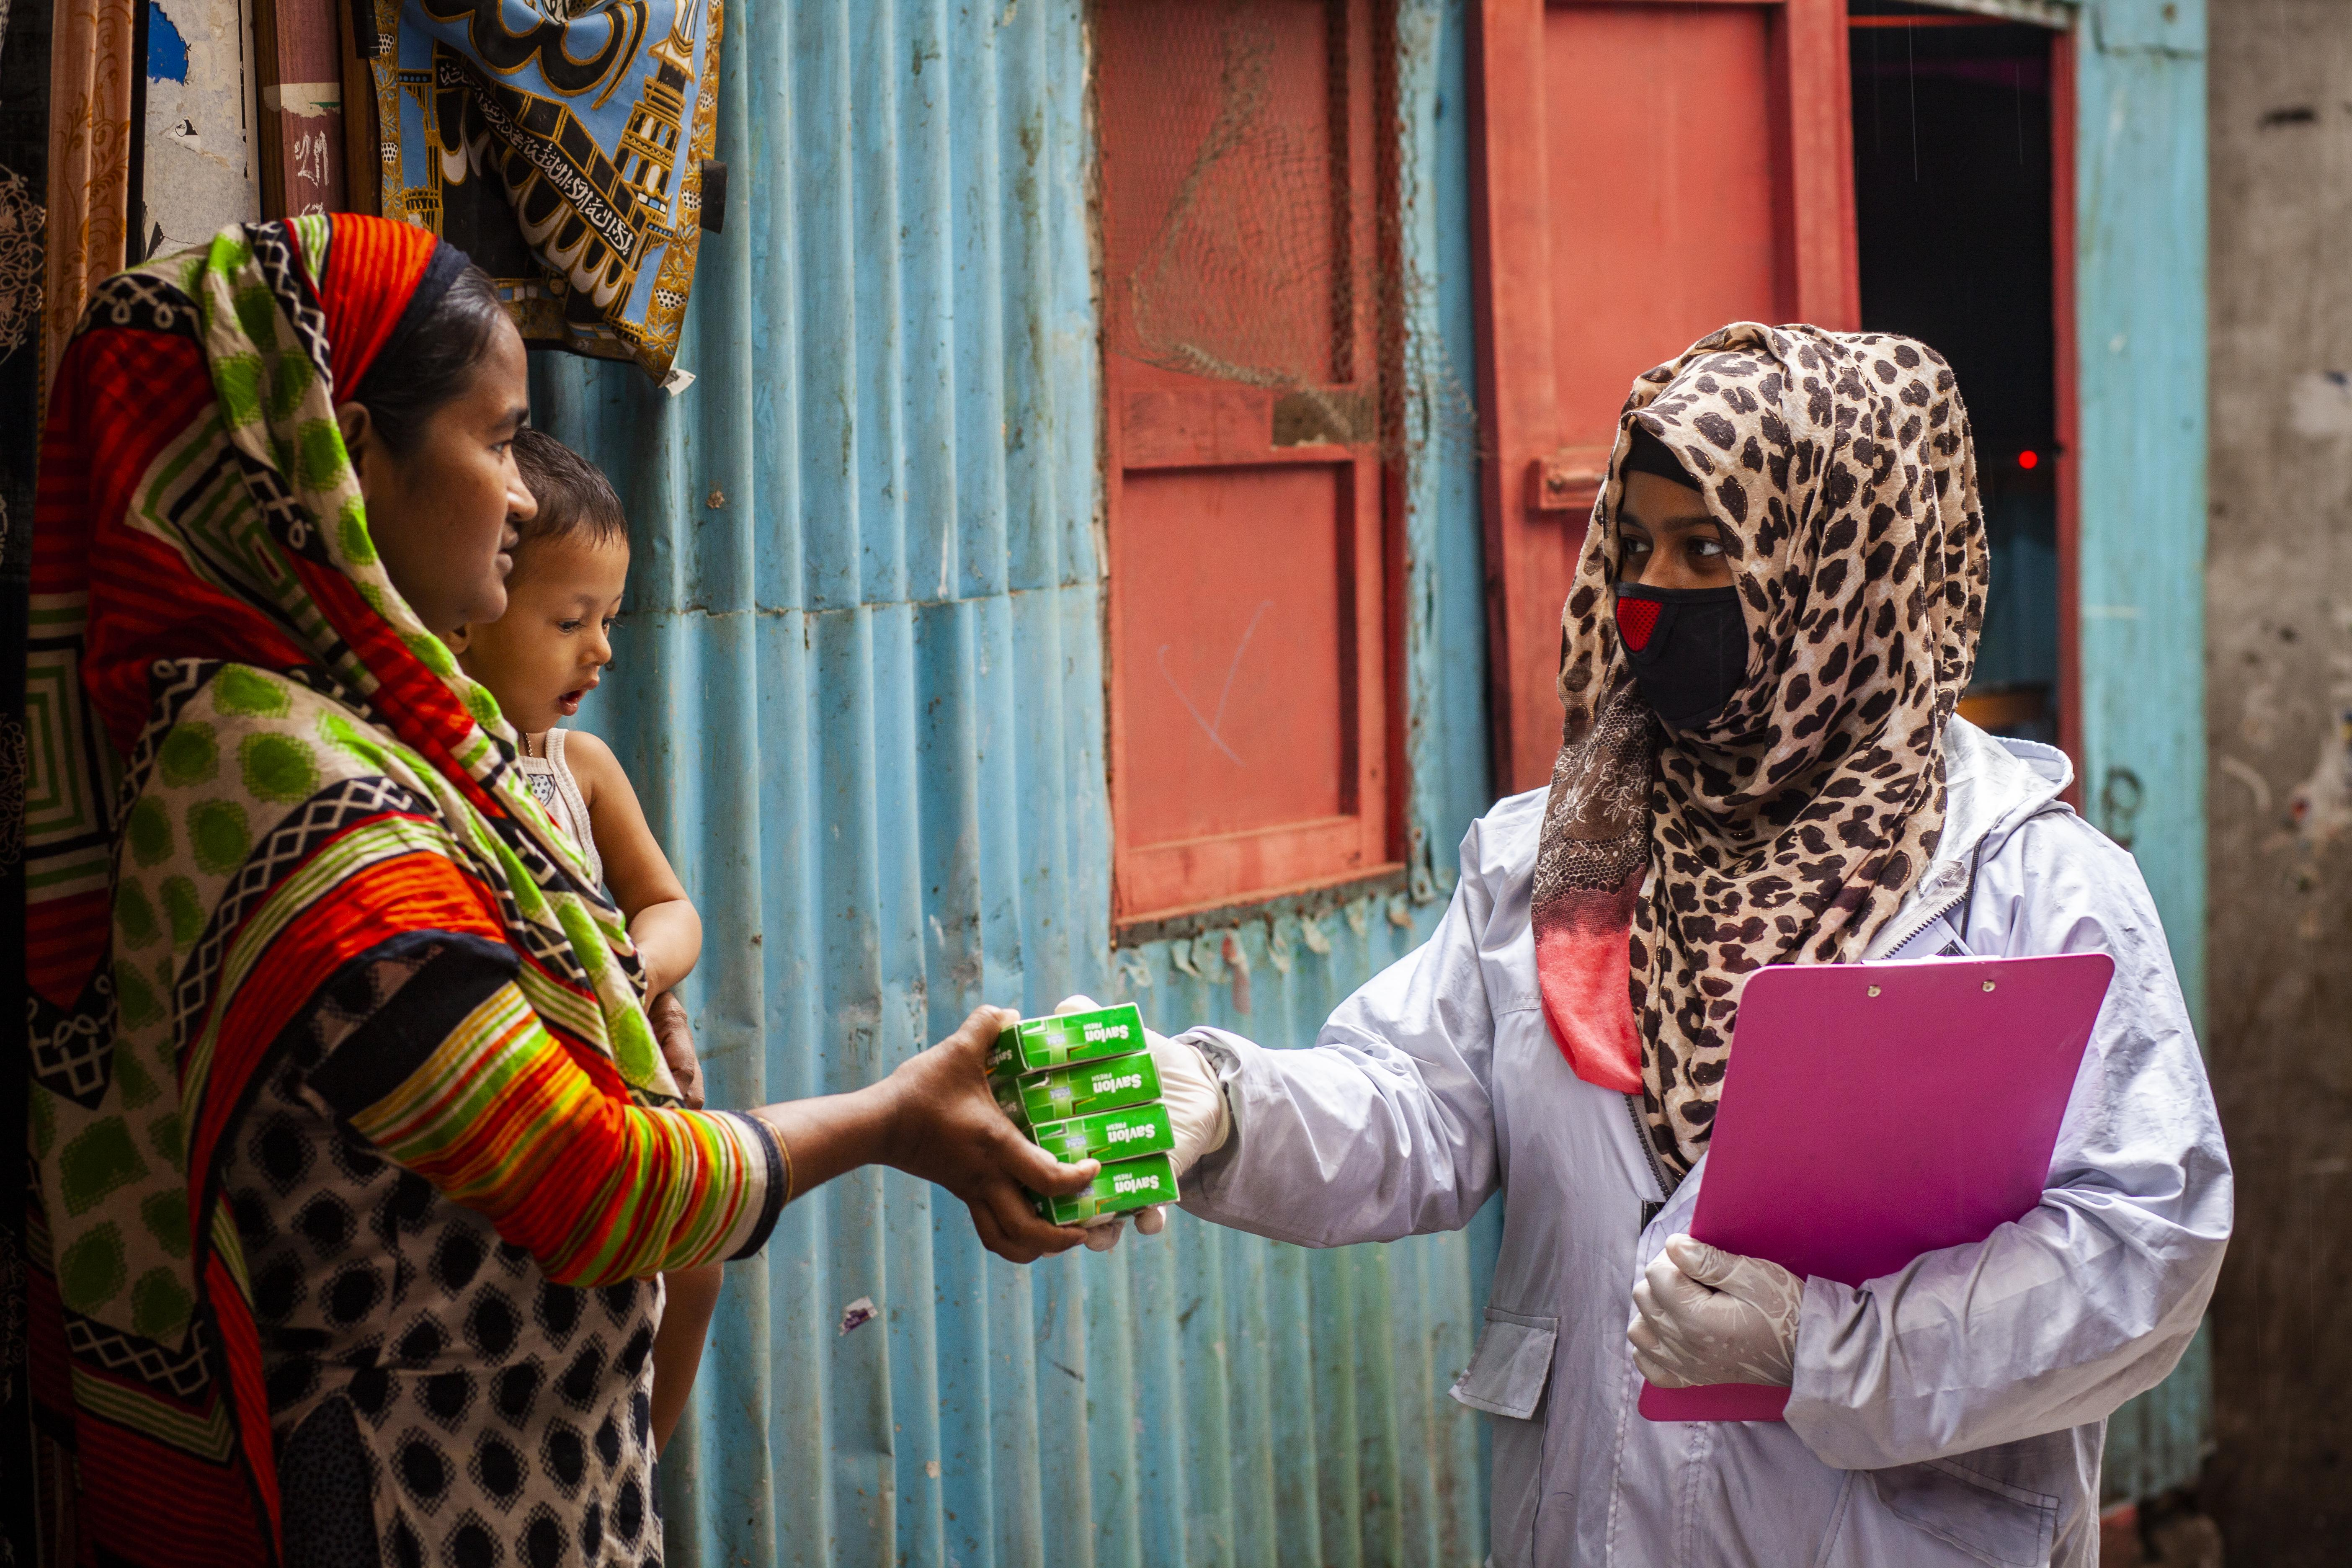 COVID-19 emergency response activities, Madartek, Basabo, Dhaka. Photo: UN Women